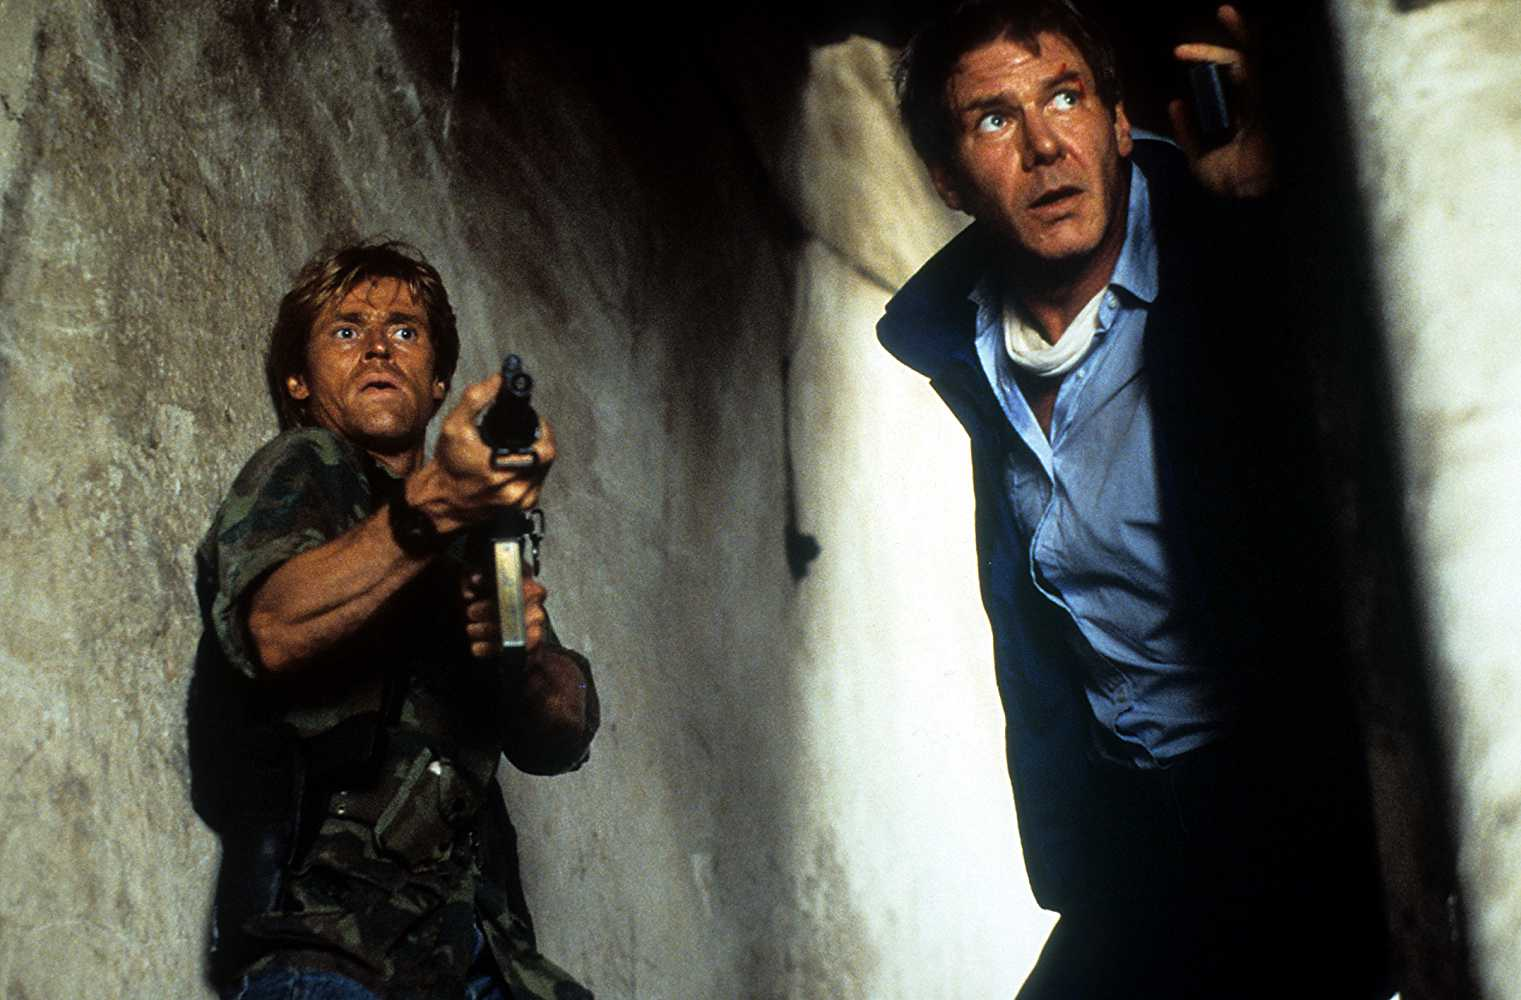 Willem Dafoe as John Clark, alongside Harrison Ford as Jack Ryan, in the 1994 movie 'Clear and Present Danger'. (IMDb)